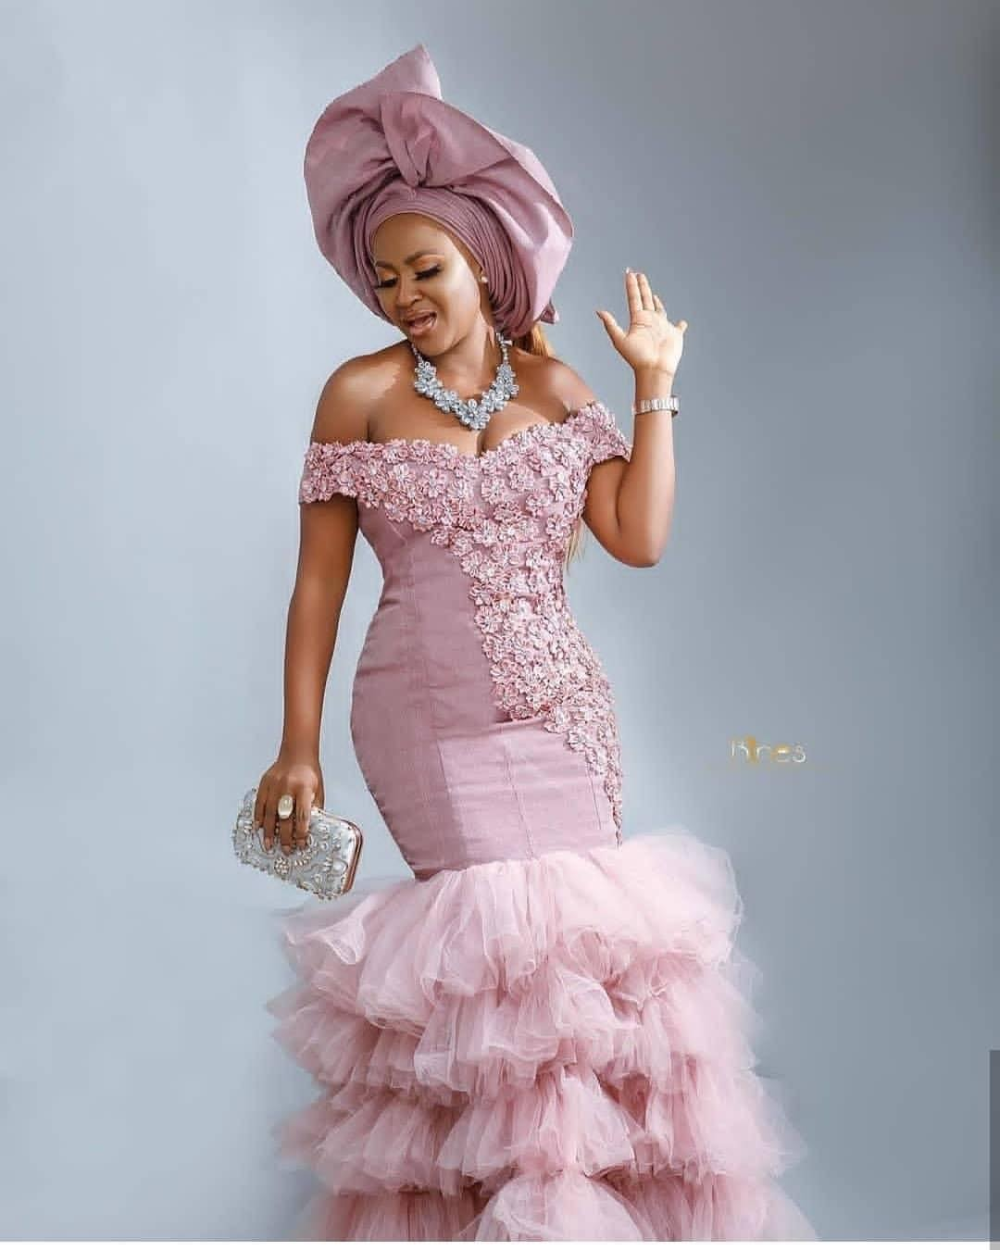 30 Stunning Aso Ebi Dress Styles For Church And Wedding 2020 In 2020 Aso Ebi Lace Styles Lace Gown Styles Lace Fashion